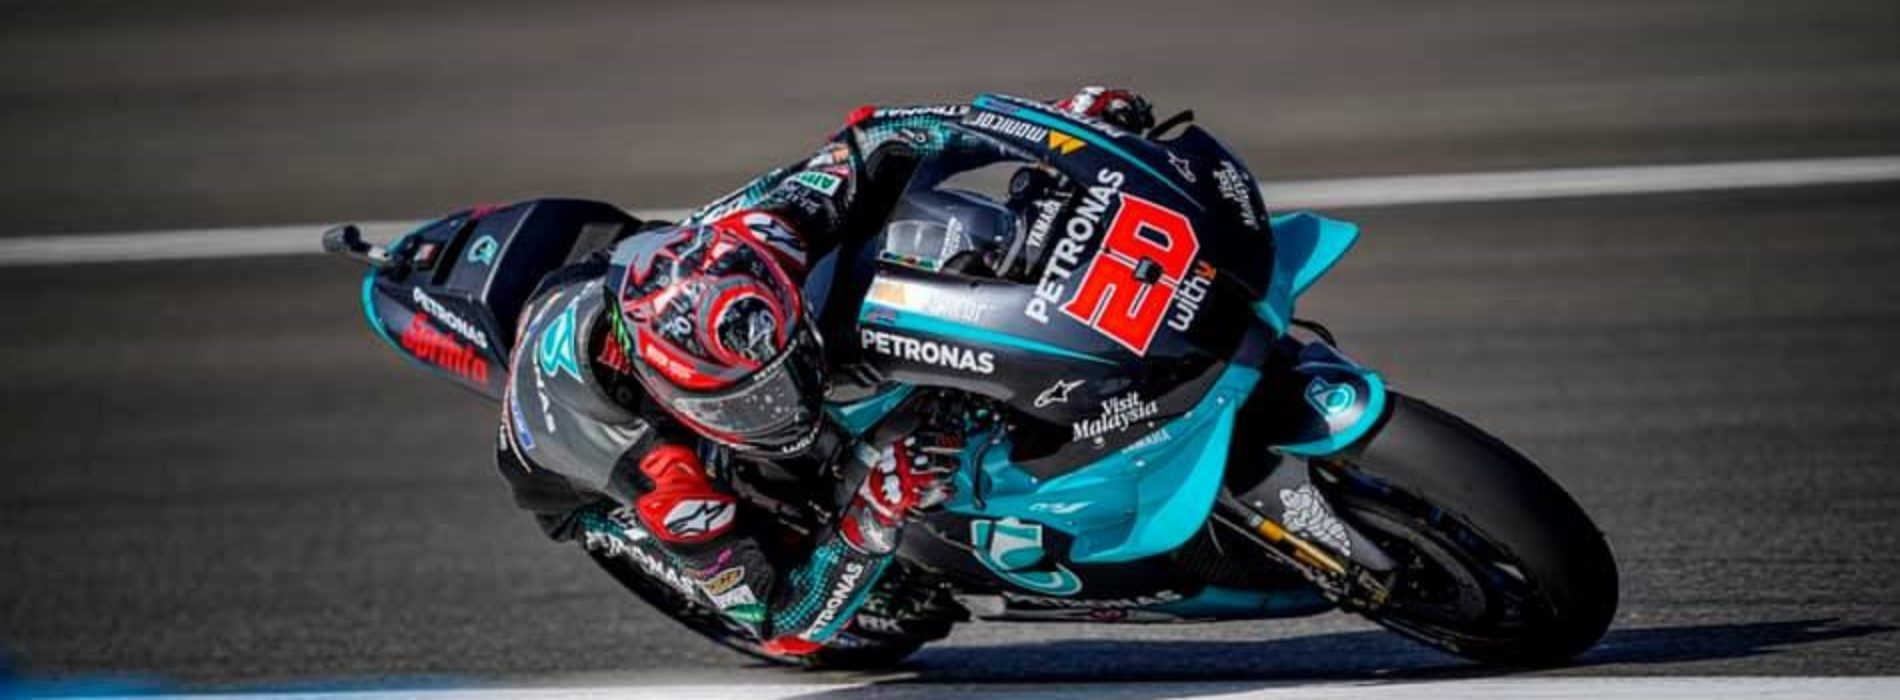 The rise of Fabio Quartararo taking back-to-back wins in MotoGP Rounds 1 and 2